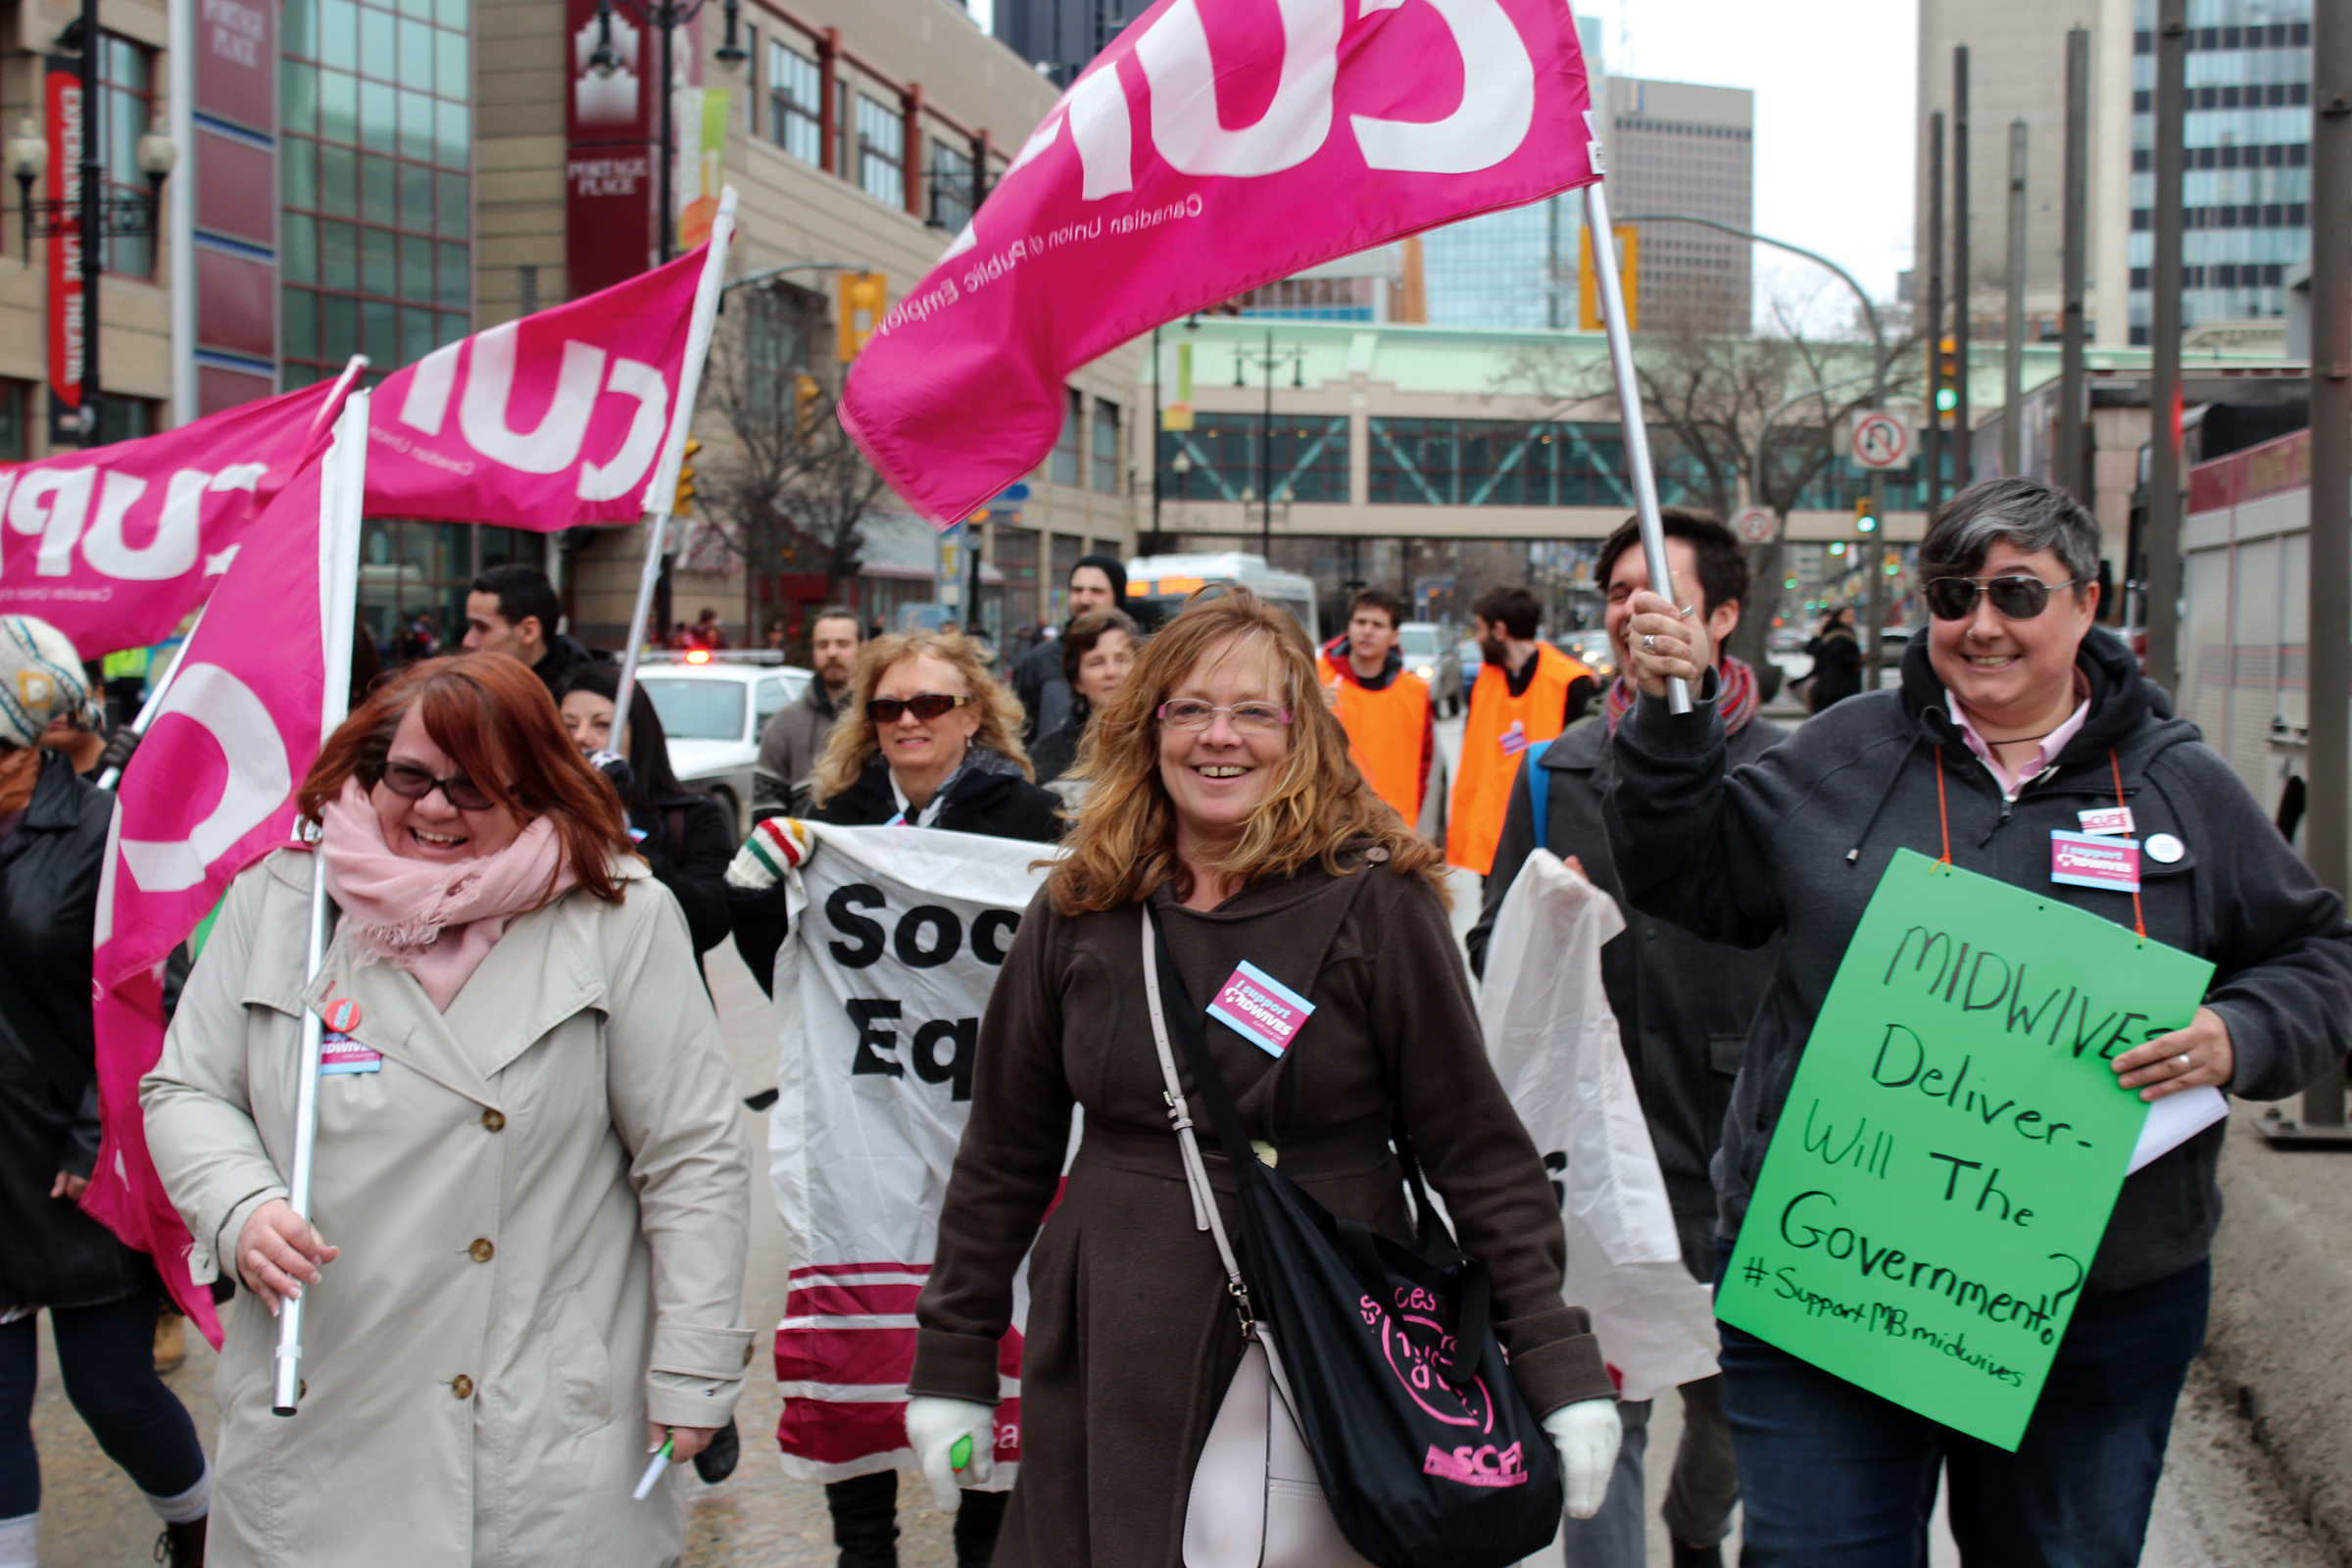 """Women march holding CUPE flags and a protest sign that says """"Midwives deliver: will the government?"""""""